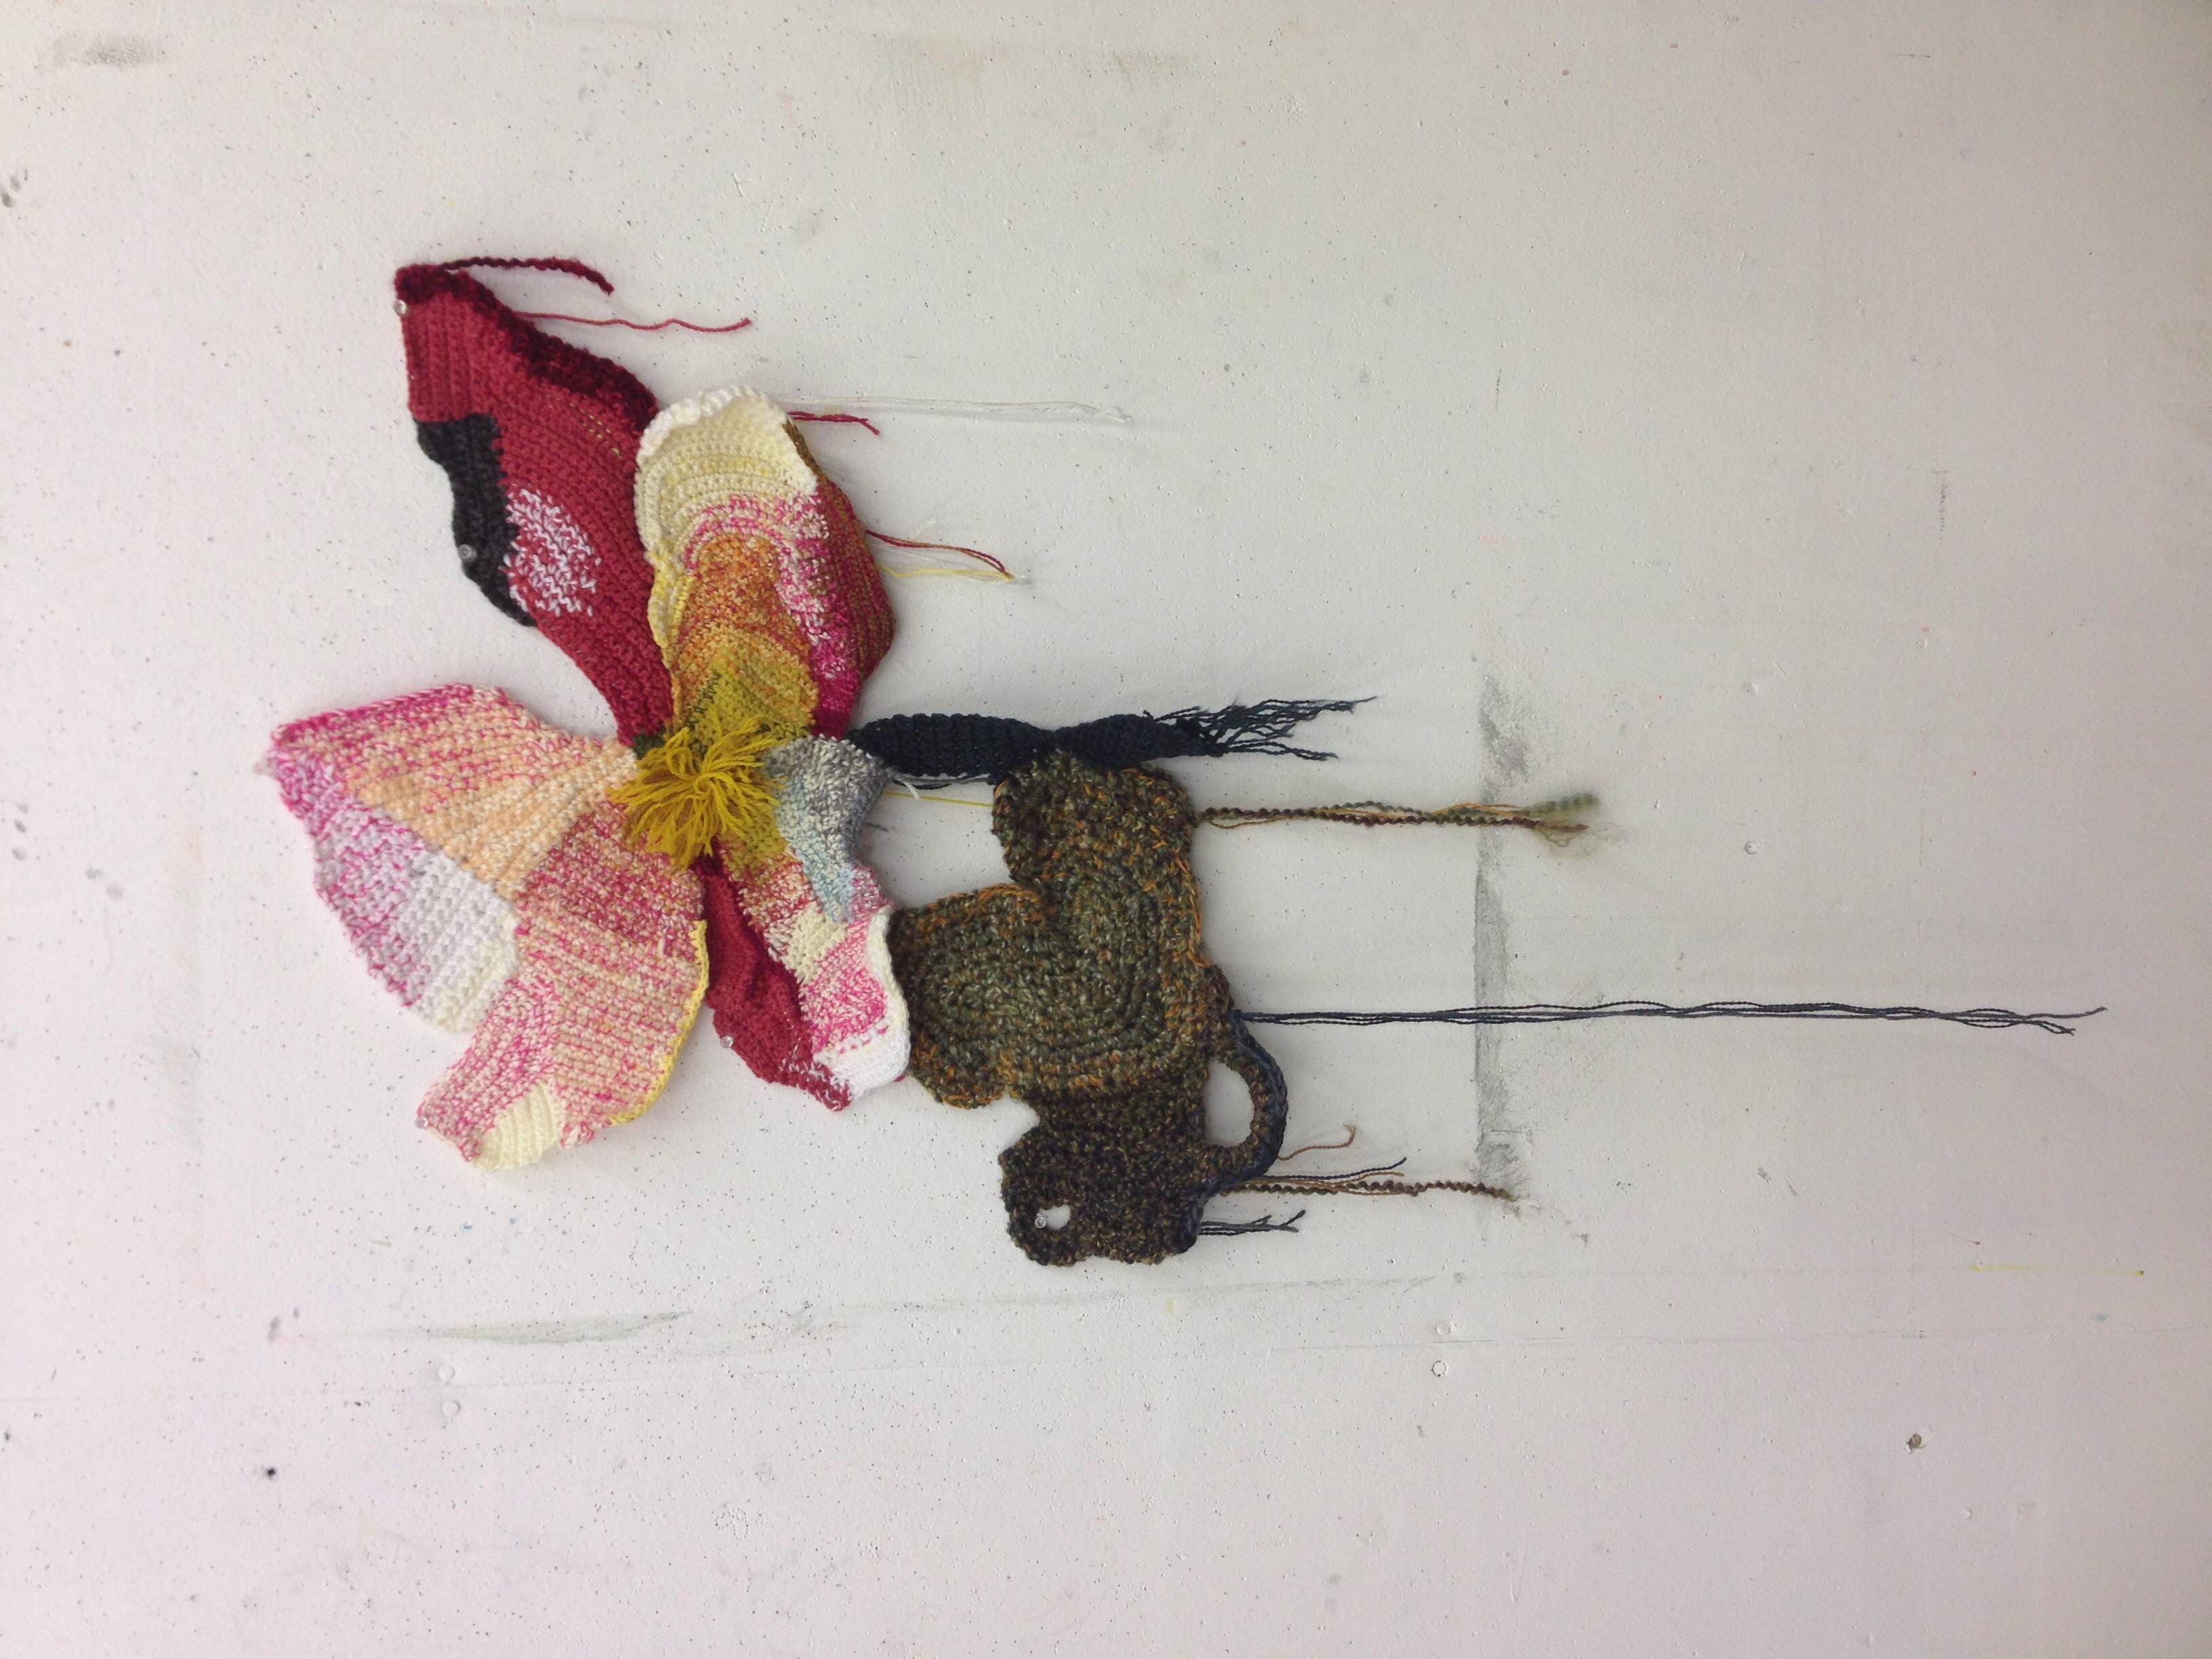 My finished project during the week at Arrowmont School of Arts and Crafts – a crocheted flower in a style similar to Jo Hamilton's.